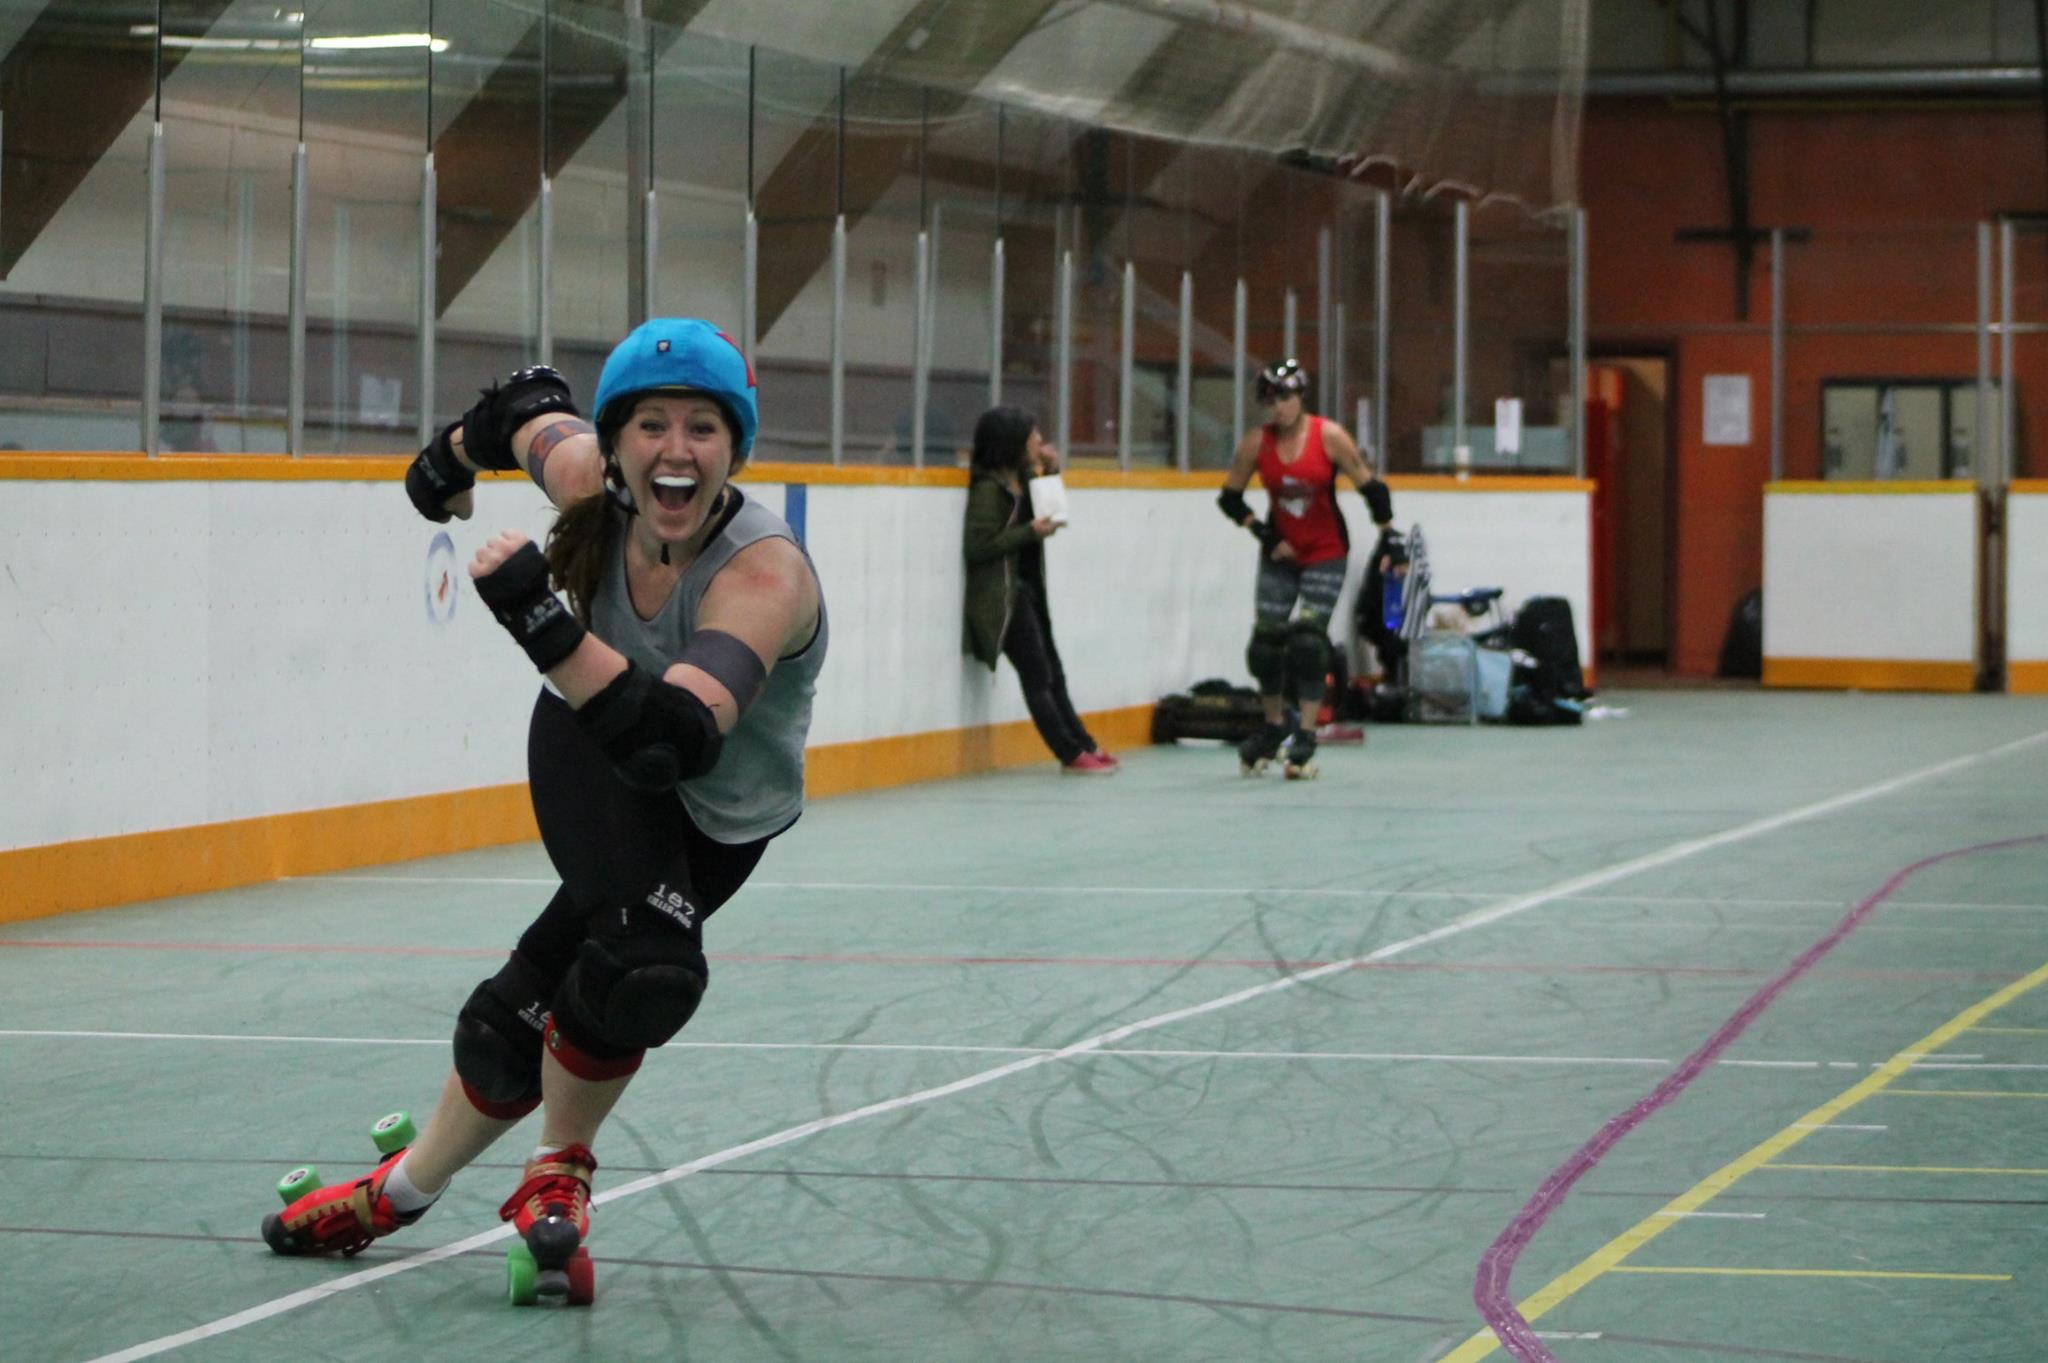 The joy this sport brings to me is visible all over my face. What isn't so obvious is that I'm skating outside the track boundaries and on my way to the penalty box.